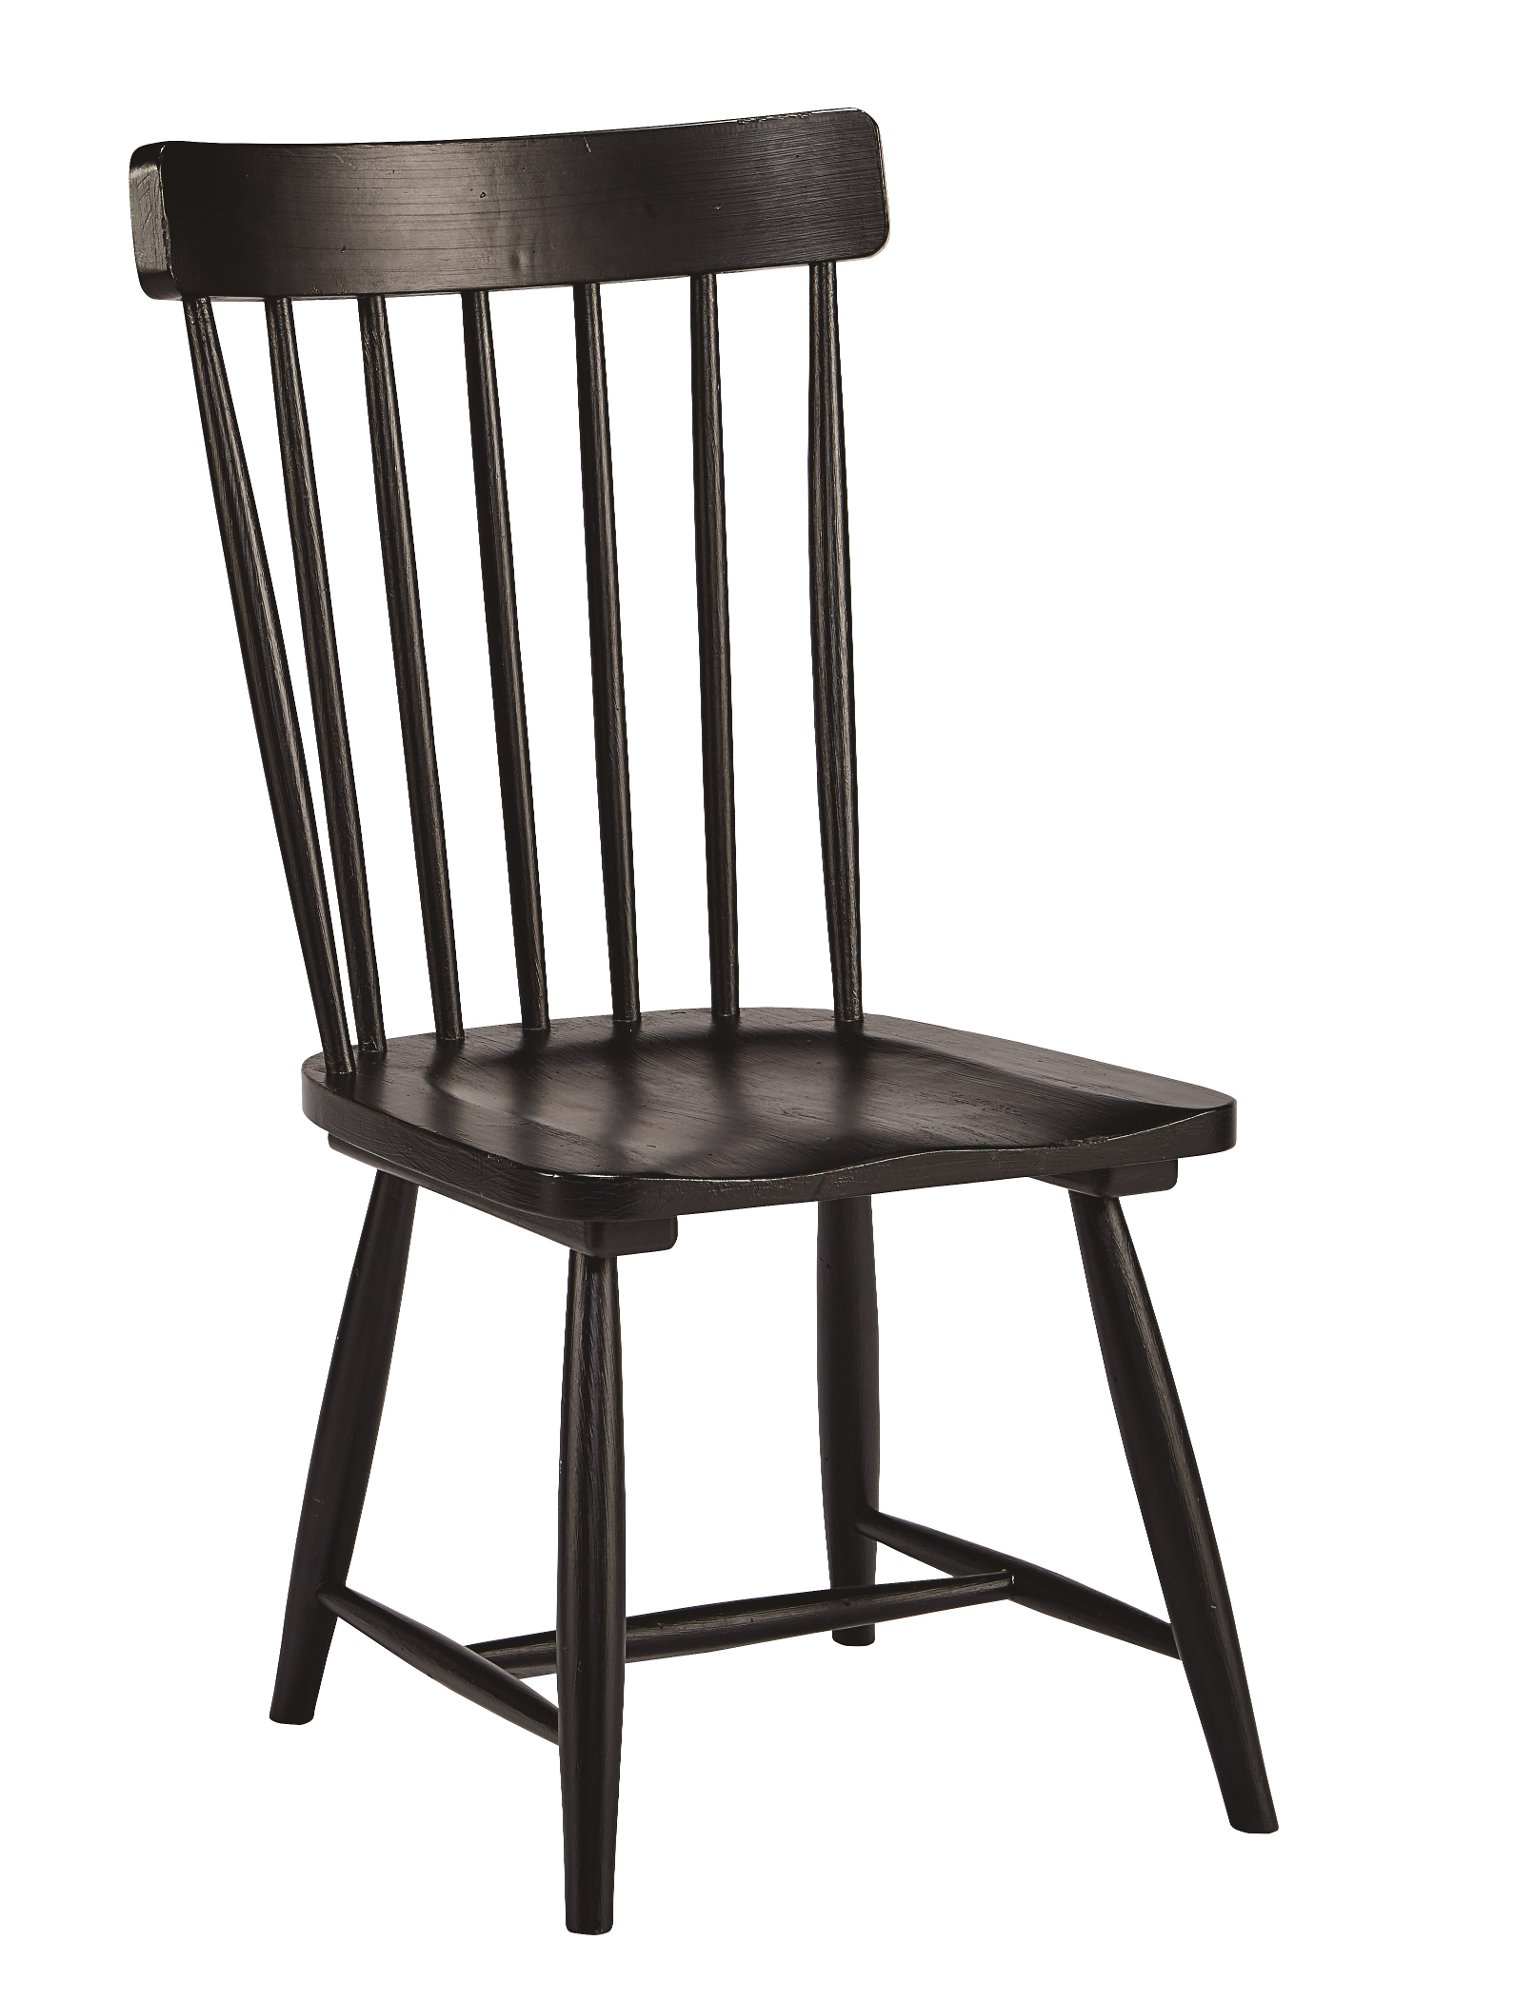 distressed black dining chairs big joe milano chair magnolia home furniture white and 7 piece set